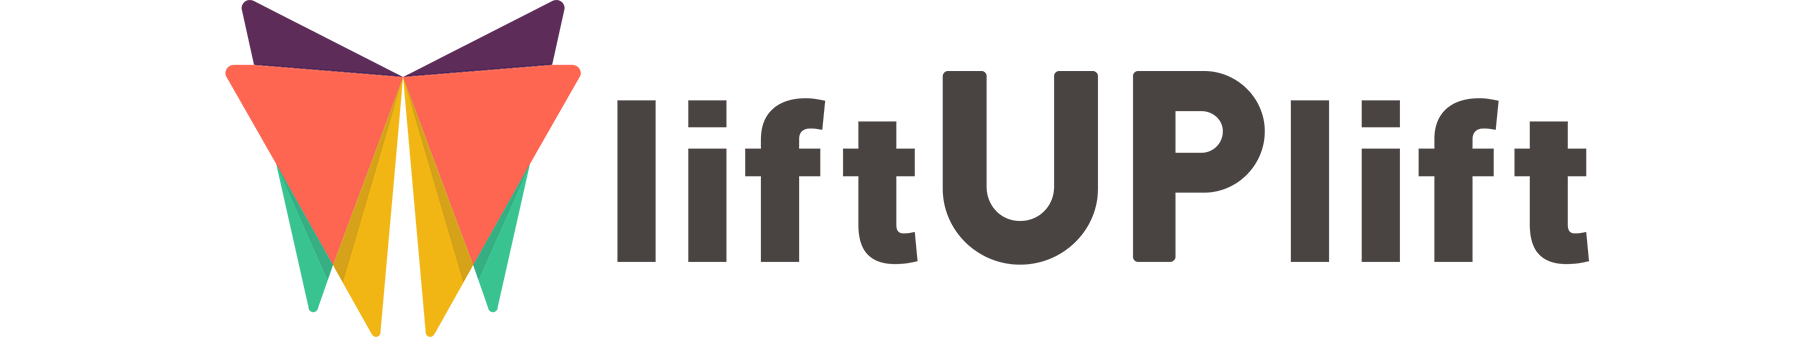 liftUPlift logo